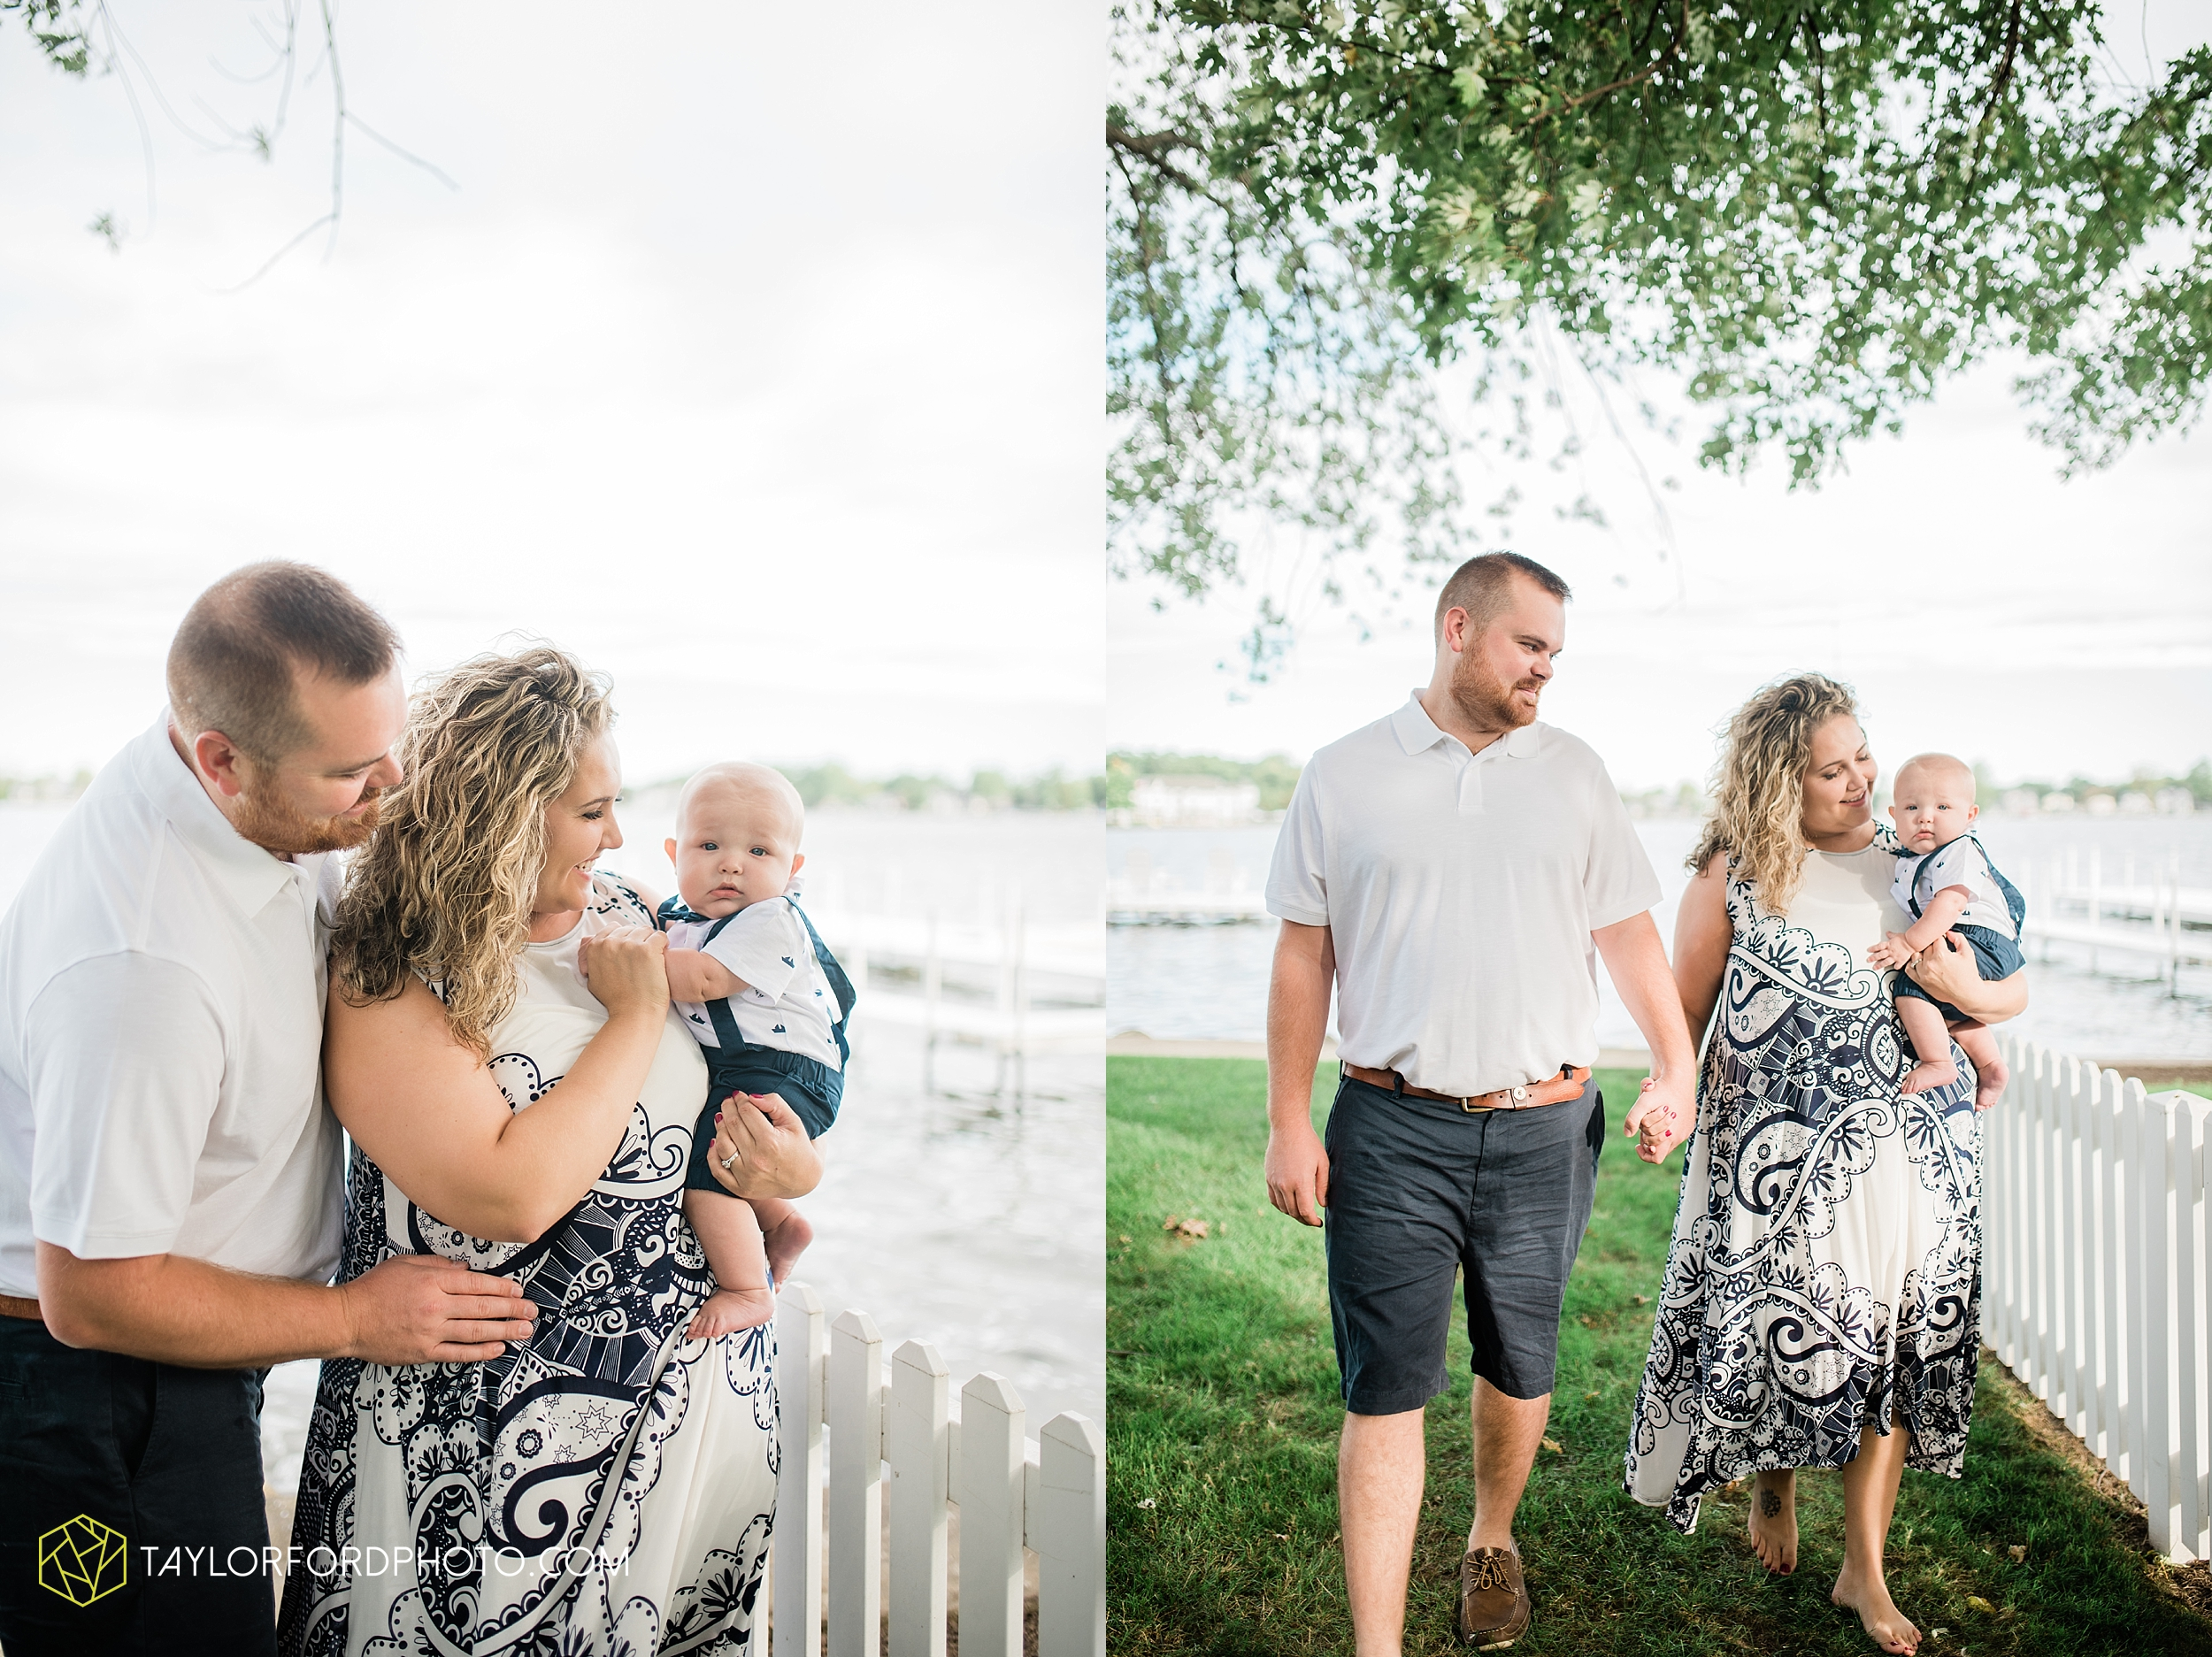 lake-wawasee-conklin-bay-lifestyle-family-september-late-fall-photographer-taylor-ford-photography_0586.jpg